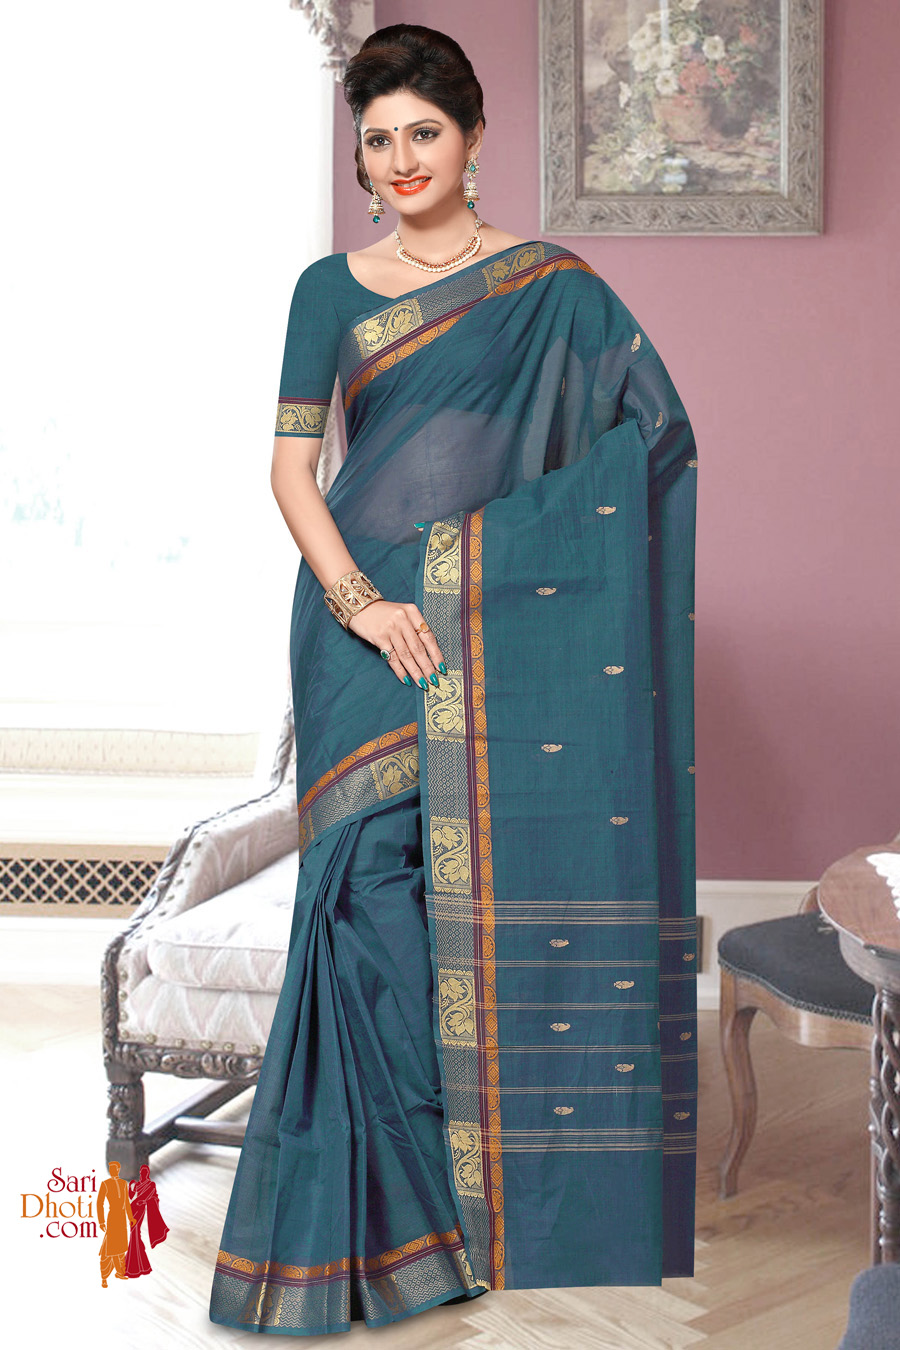 Kanchi Cotton 2777